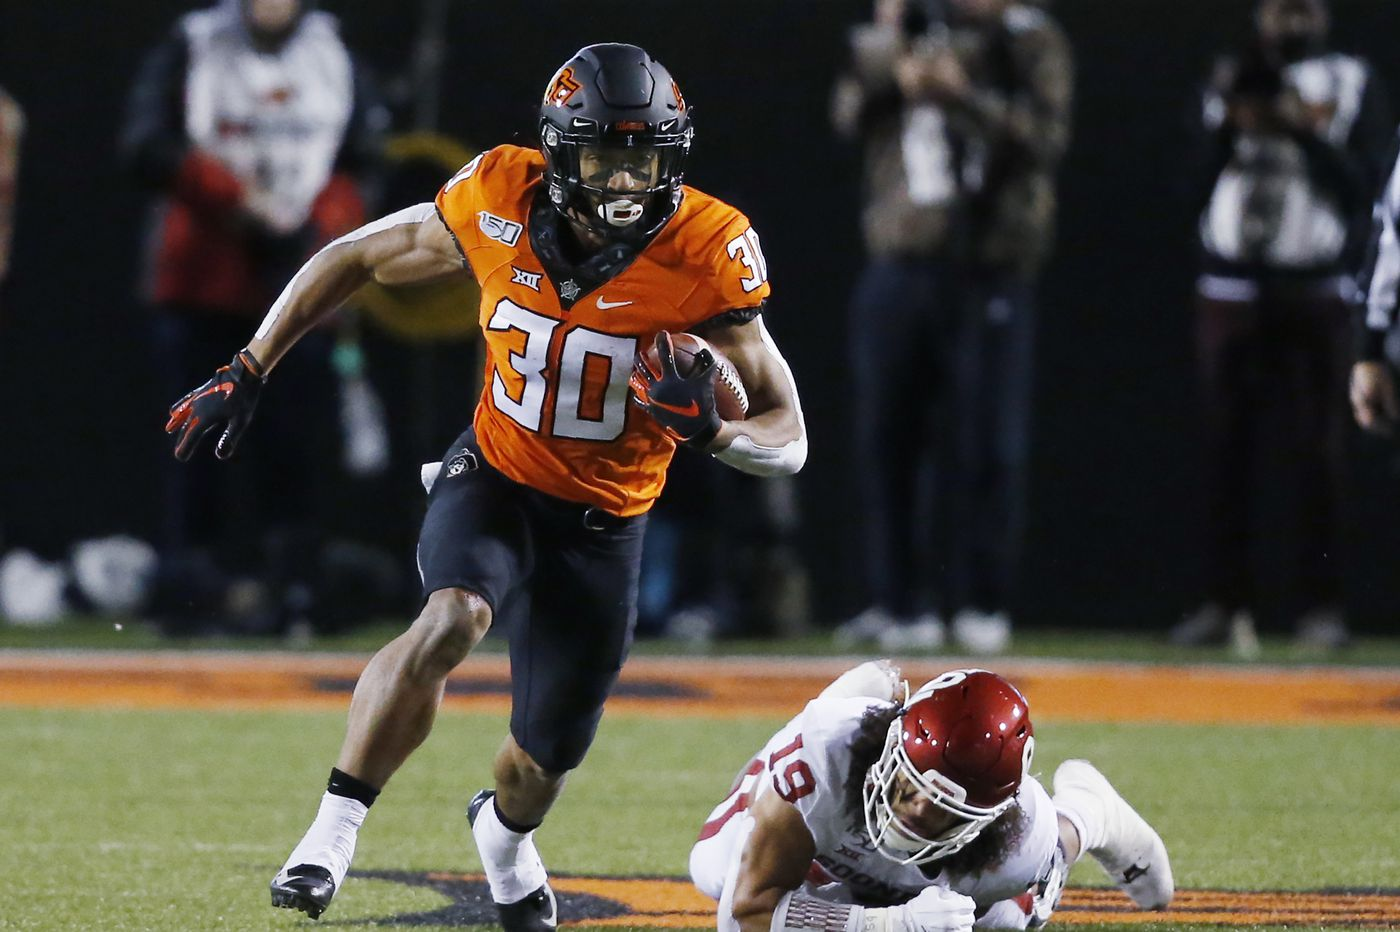 Sports chatter: Oklahoma State RB Chuba Hubbard says foot 'still on the gas' after apology video with Mike Gundy